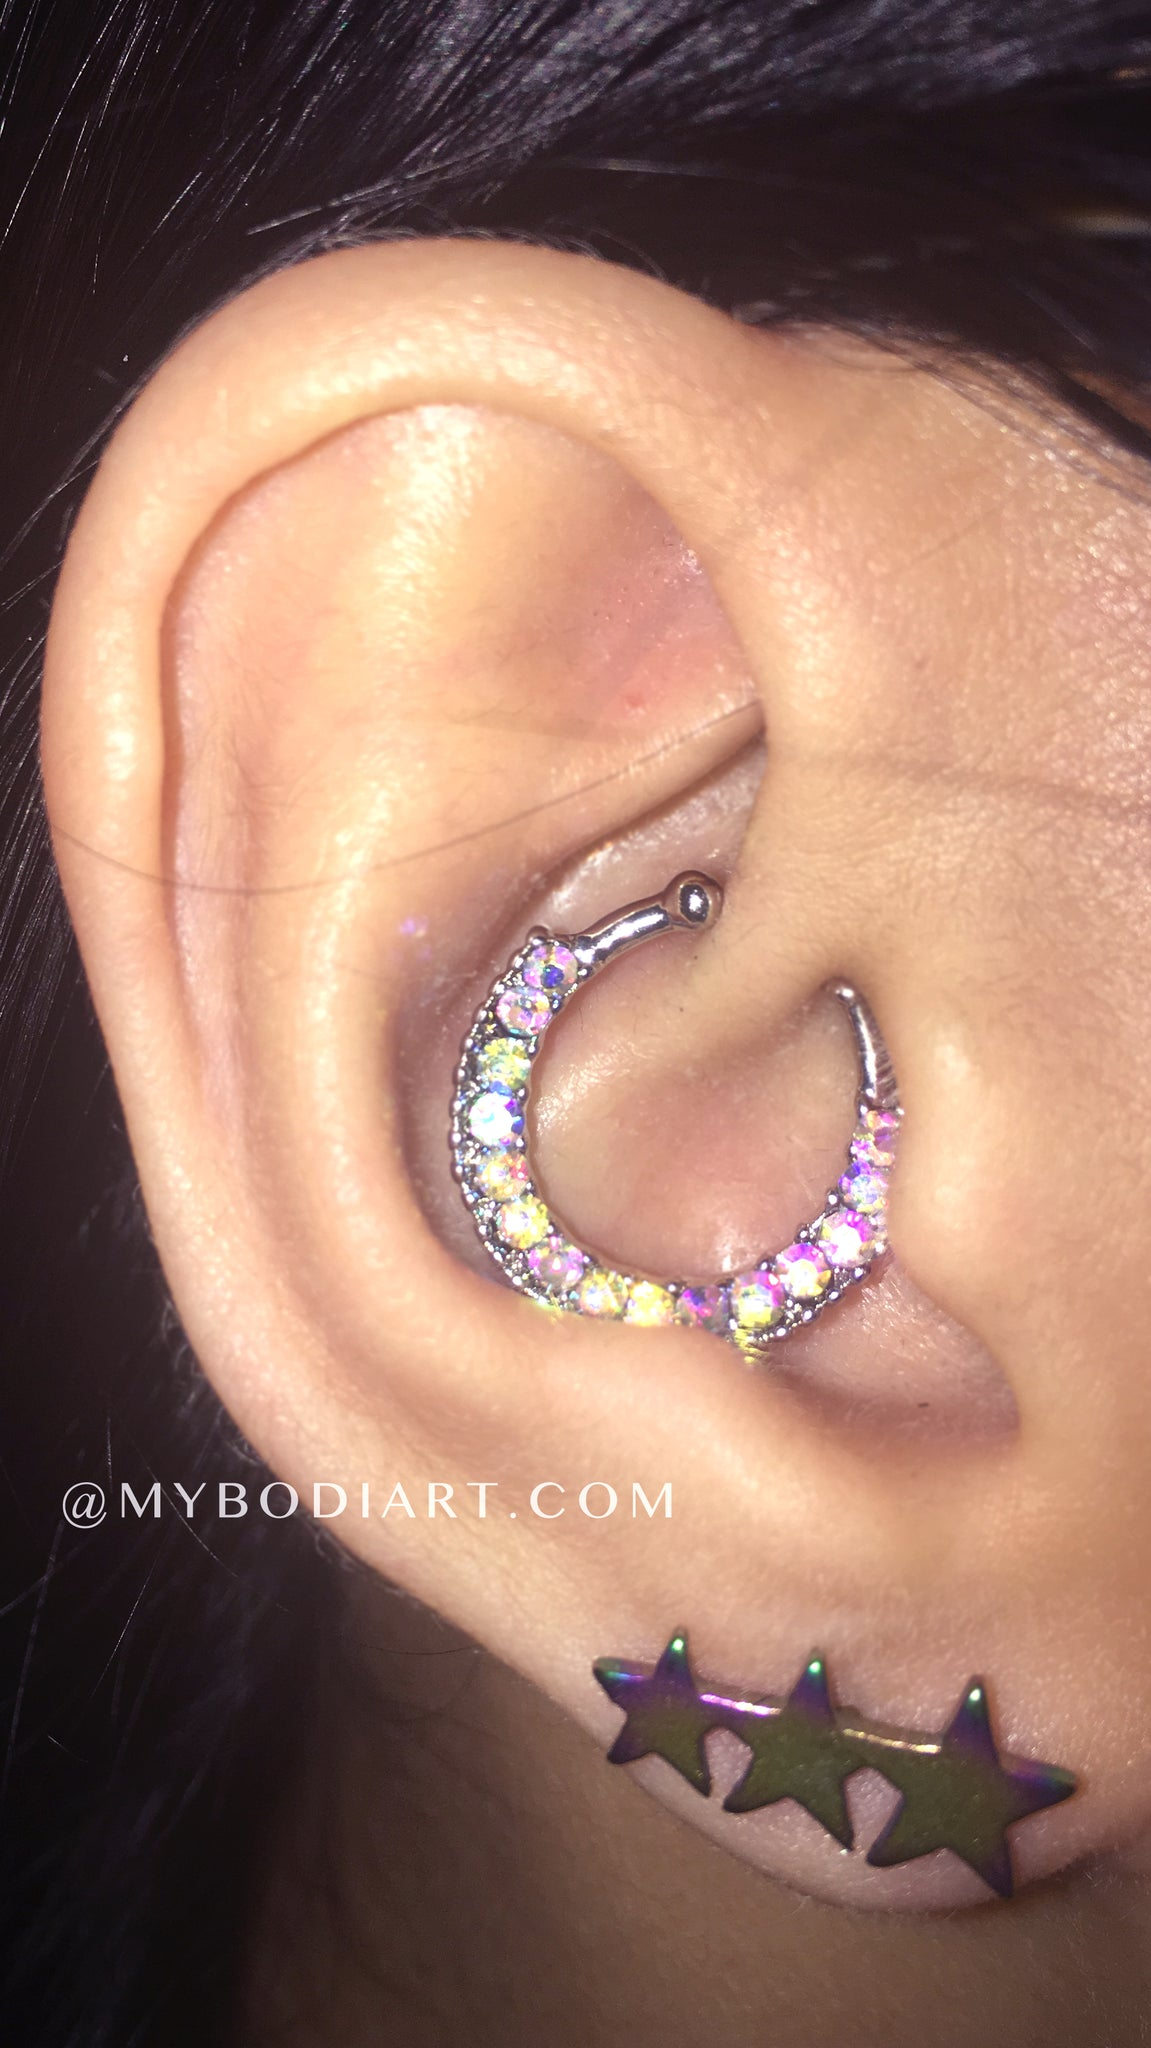 Different Unique Ear Piercing Ideas for Girls - la perforación del oído chicas idea - www.MyBodiArt.com